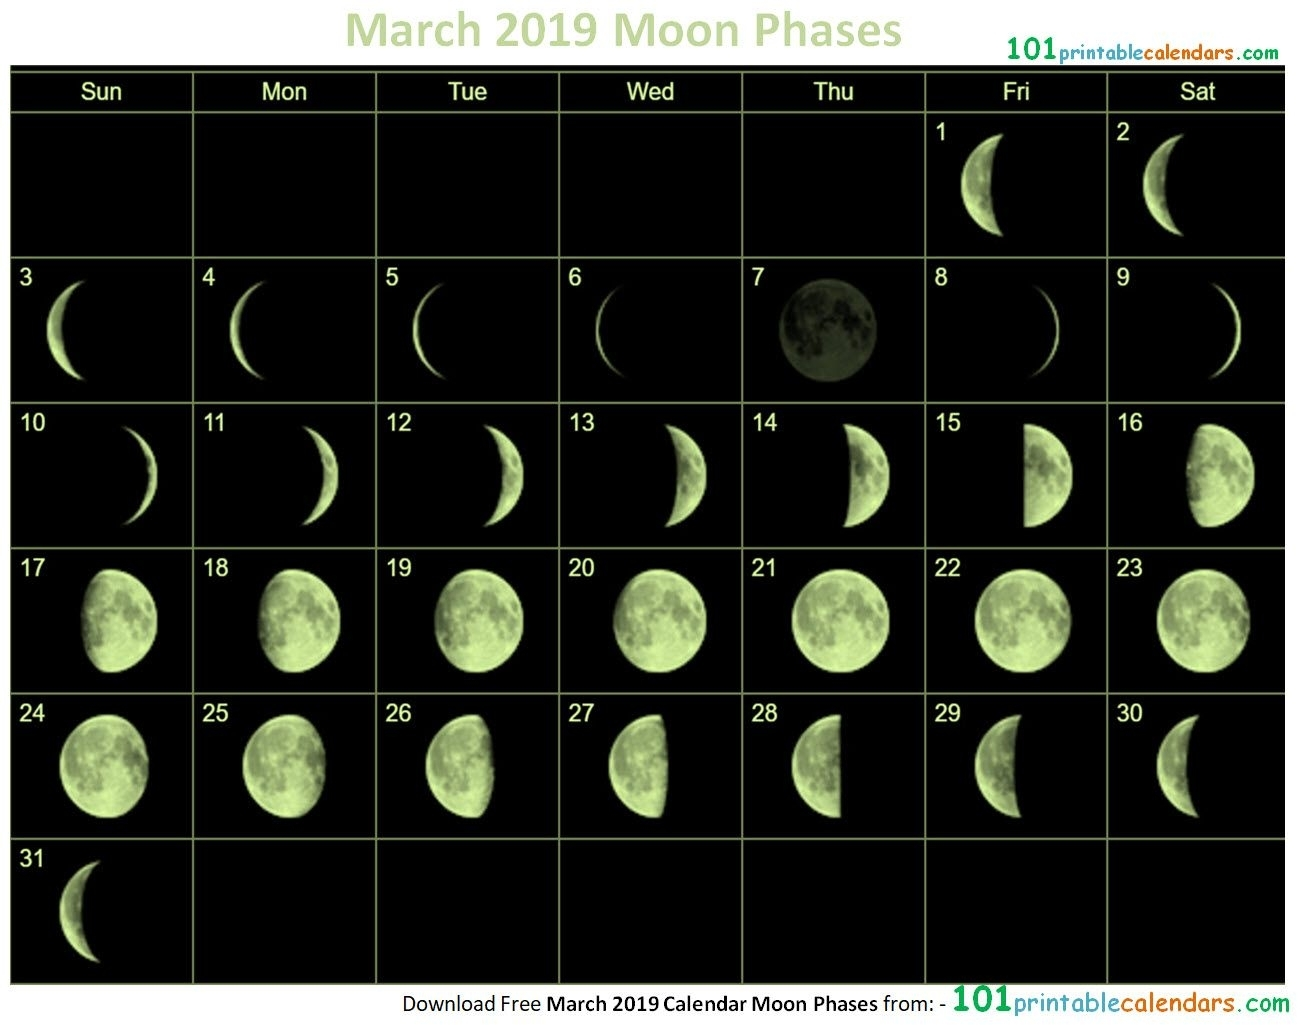 March 2019 Calendar Moon Phases | March Month Calendar | Moon Phase pertaining to 12 Month Calendar Based On Lunar Cycles